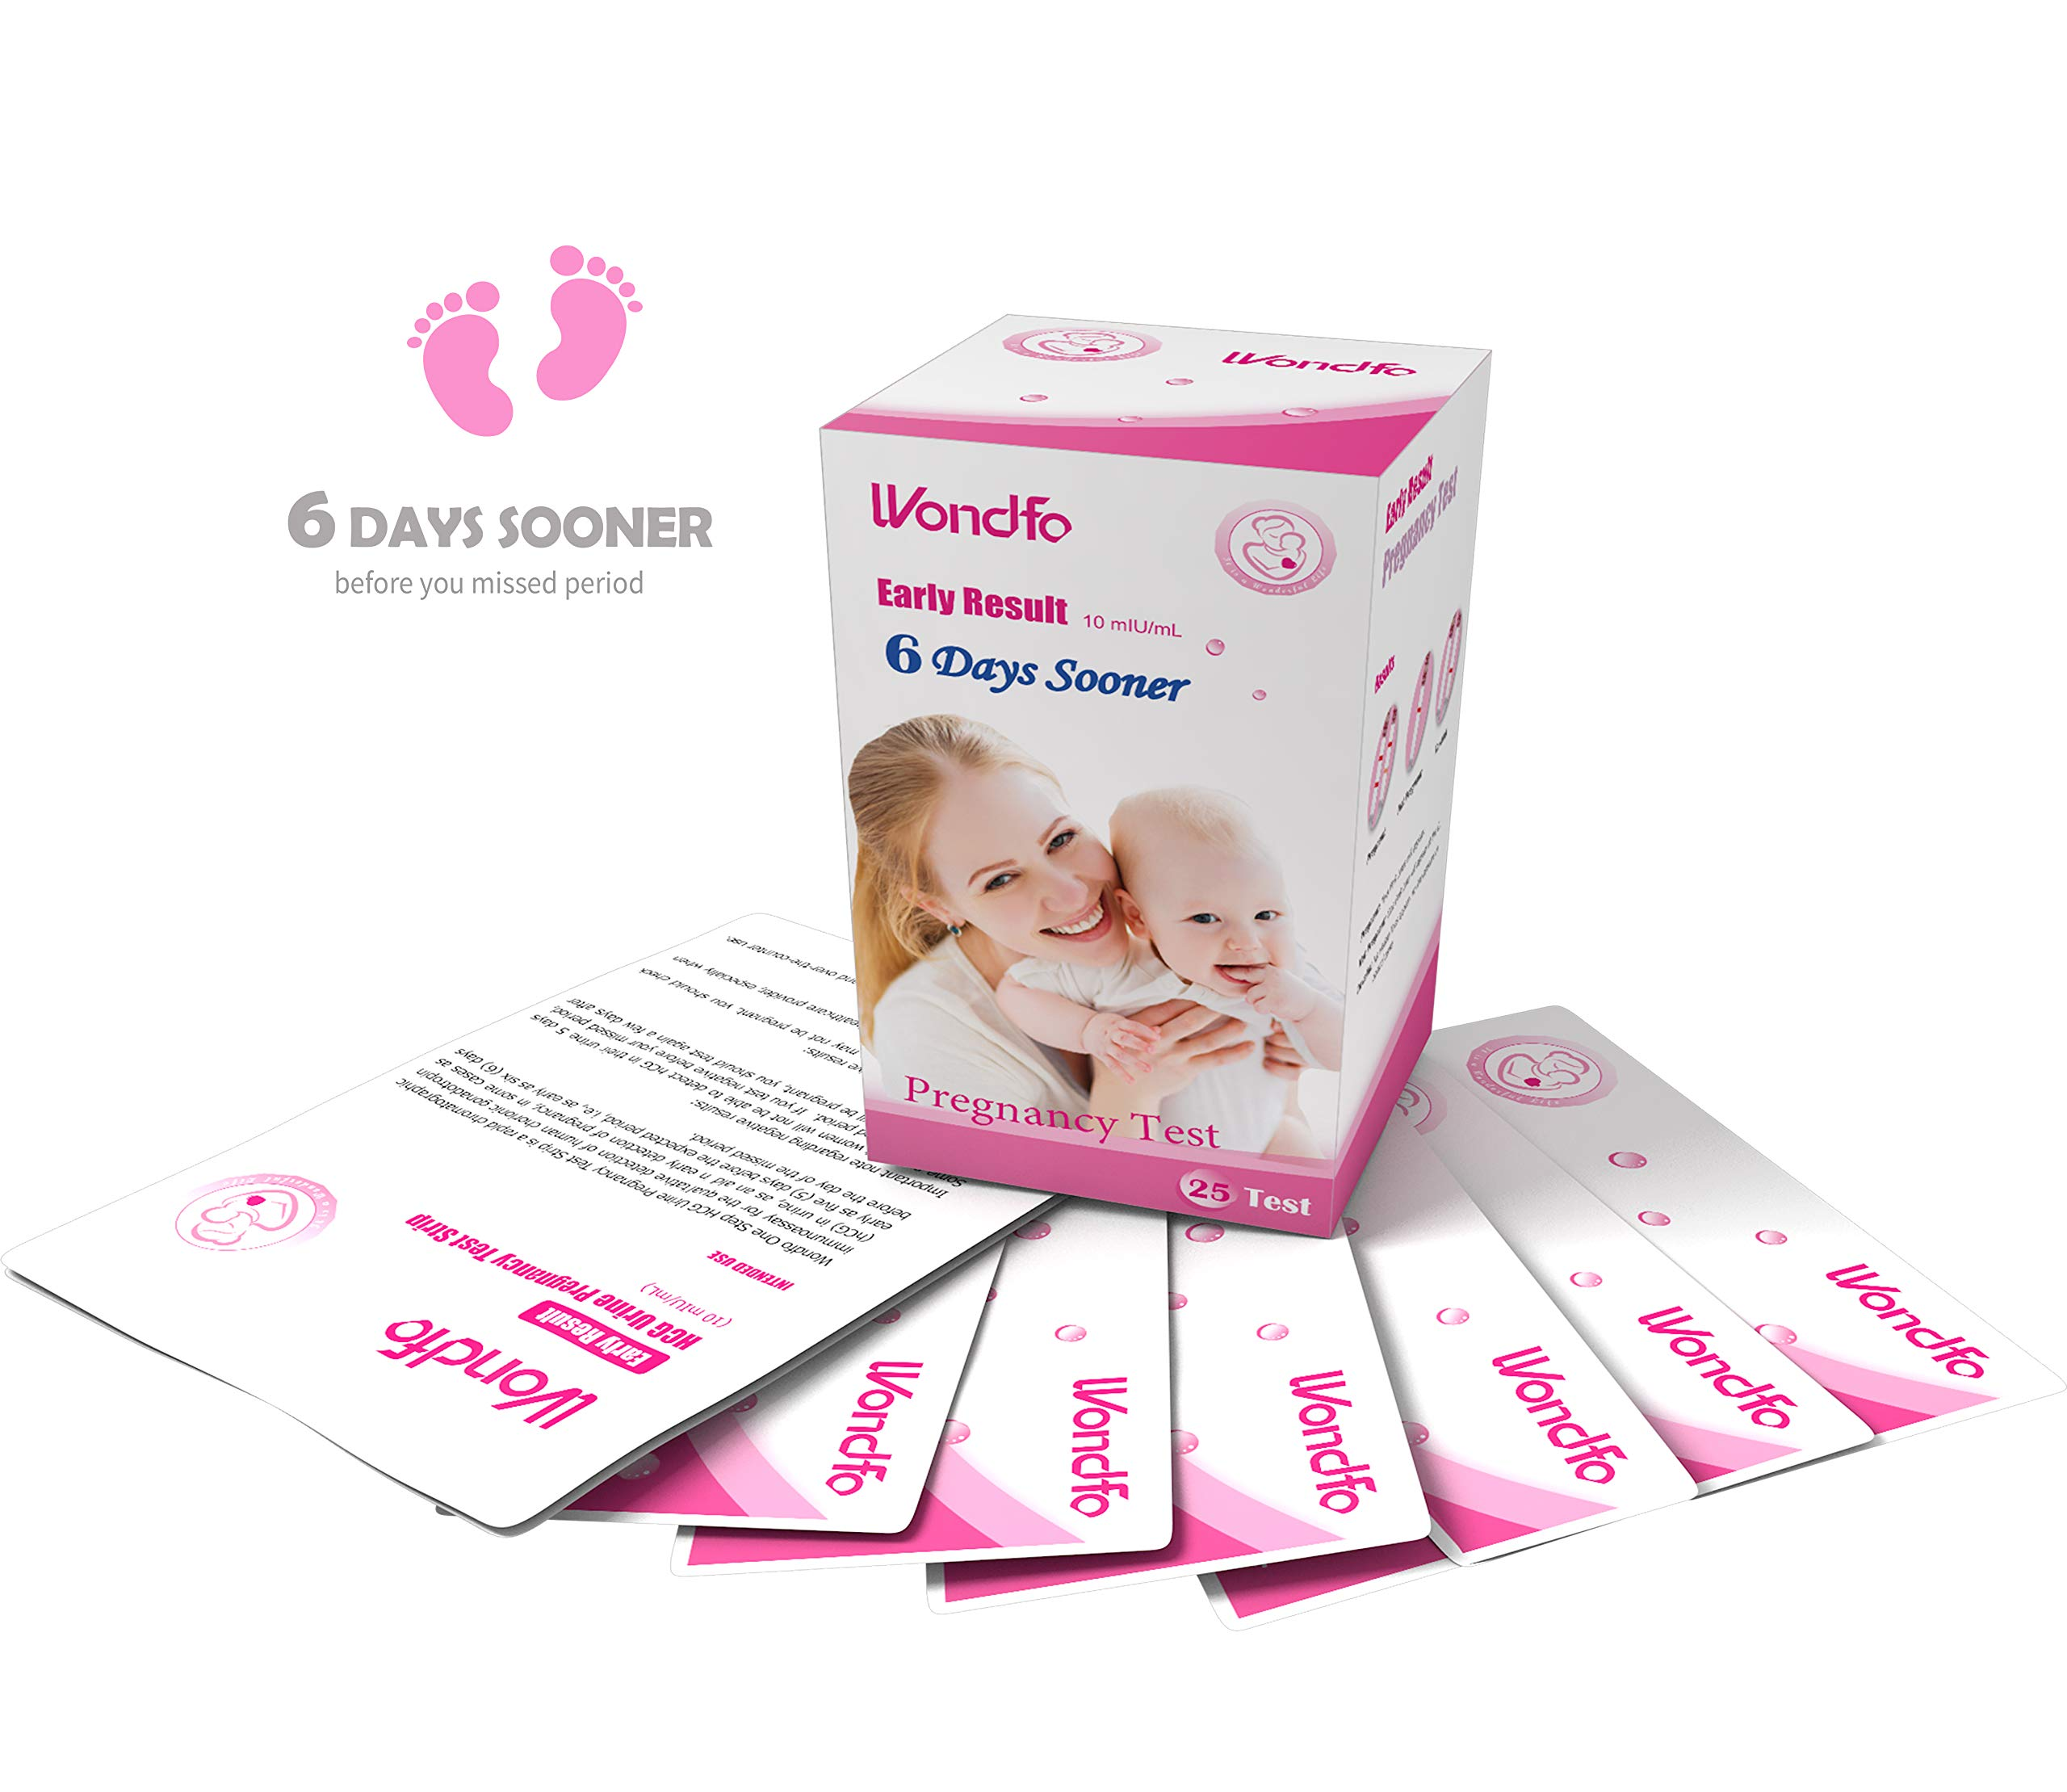 Wondfo 25Pack (10mIU) Early Result Pregnancy HCG Urine Test Strips. 25 HCG Tests 10mIU by Wondfo